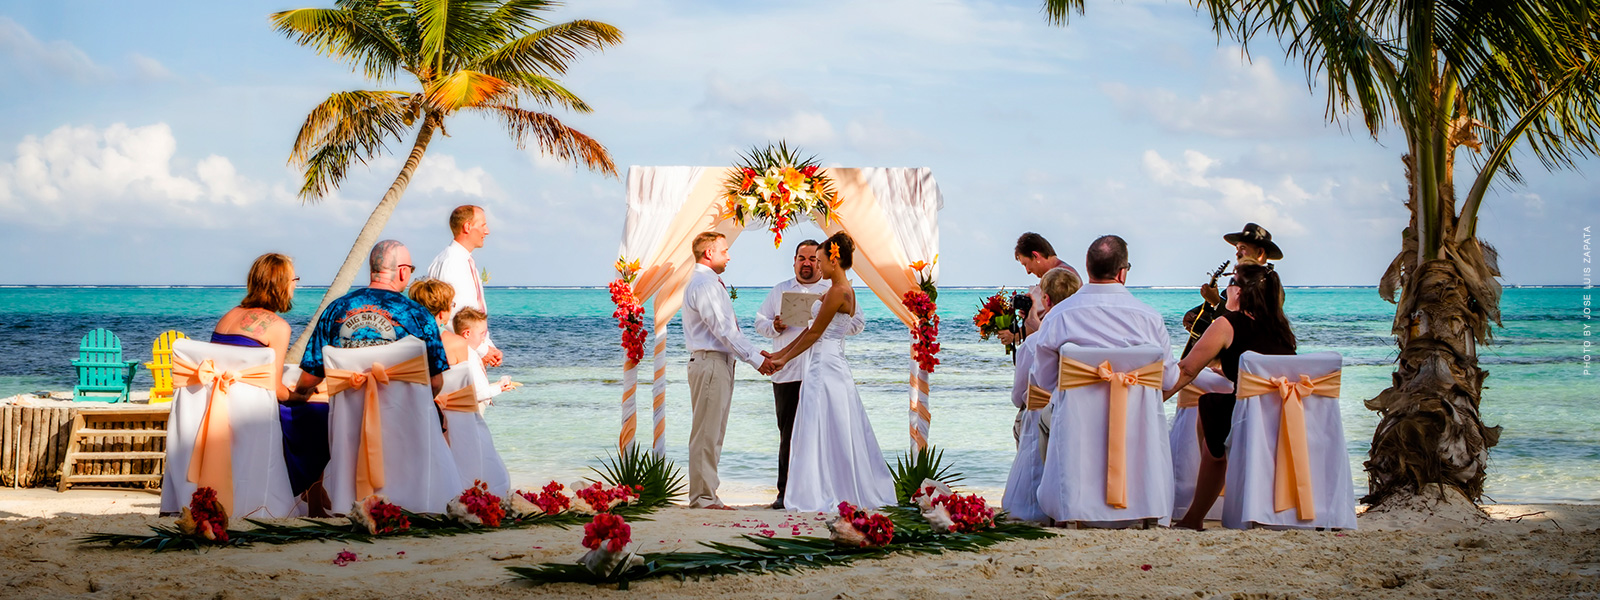 belize weddings and honeymoons at sandy point resorts photo by jose luis zapata